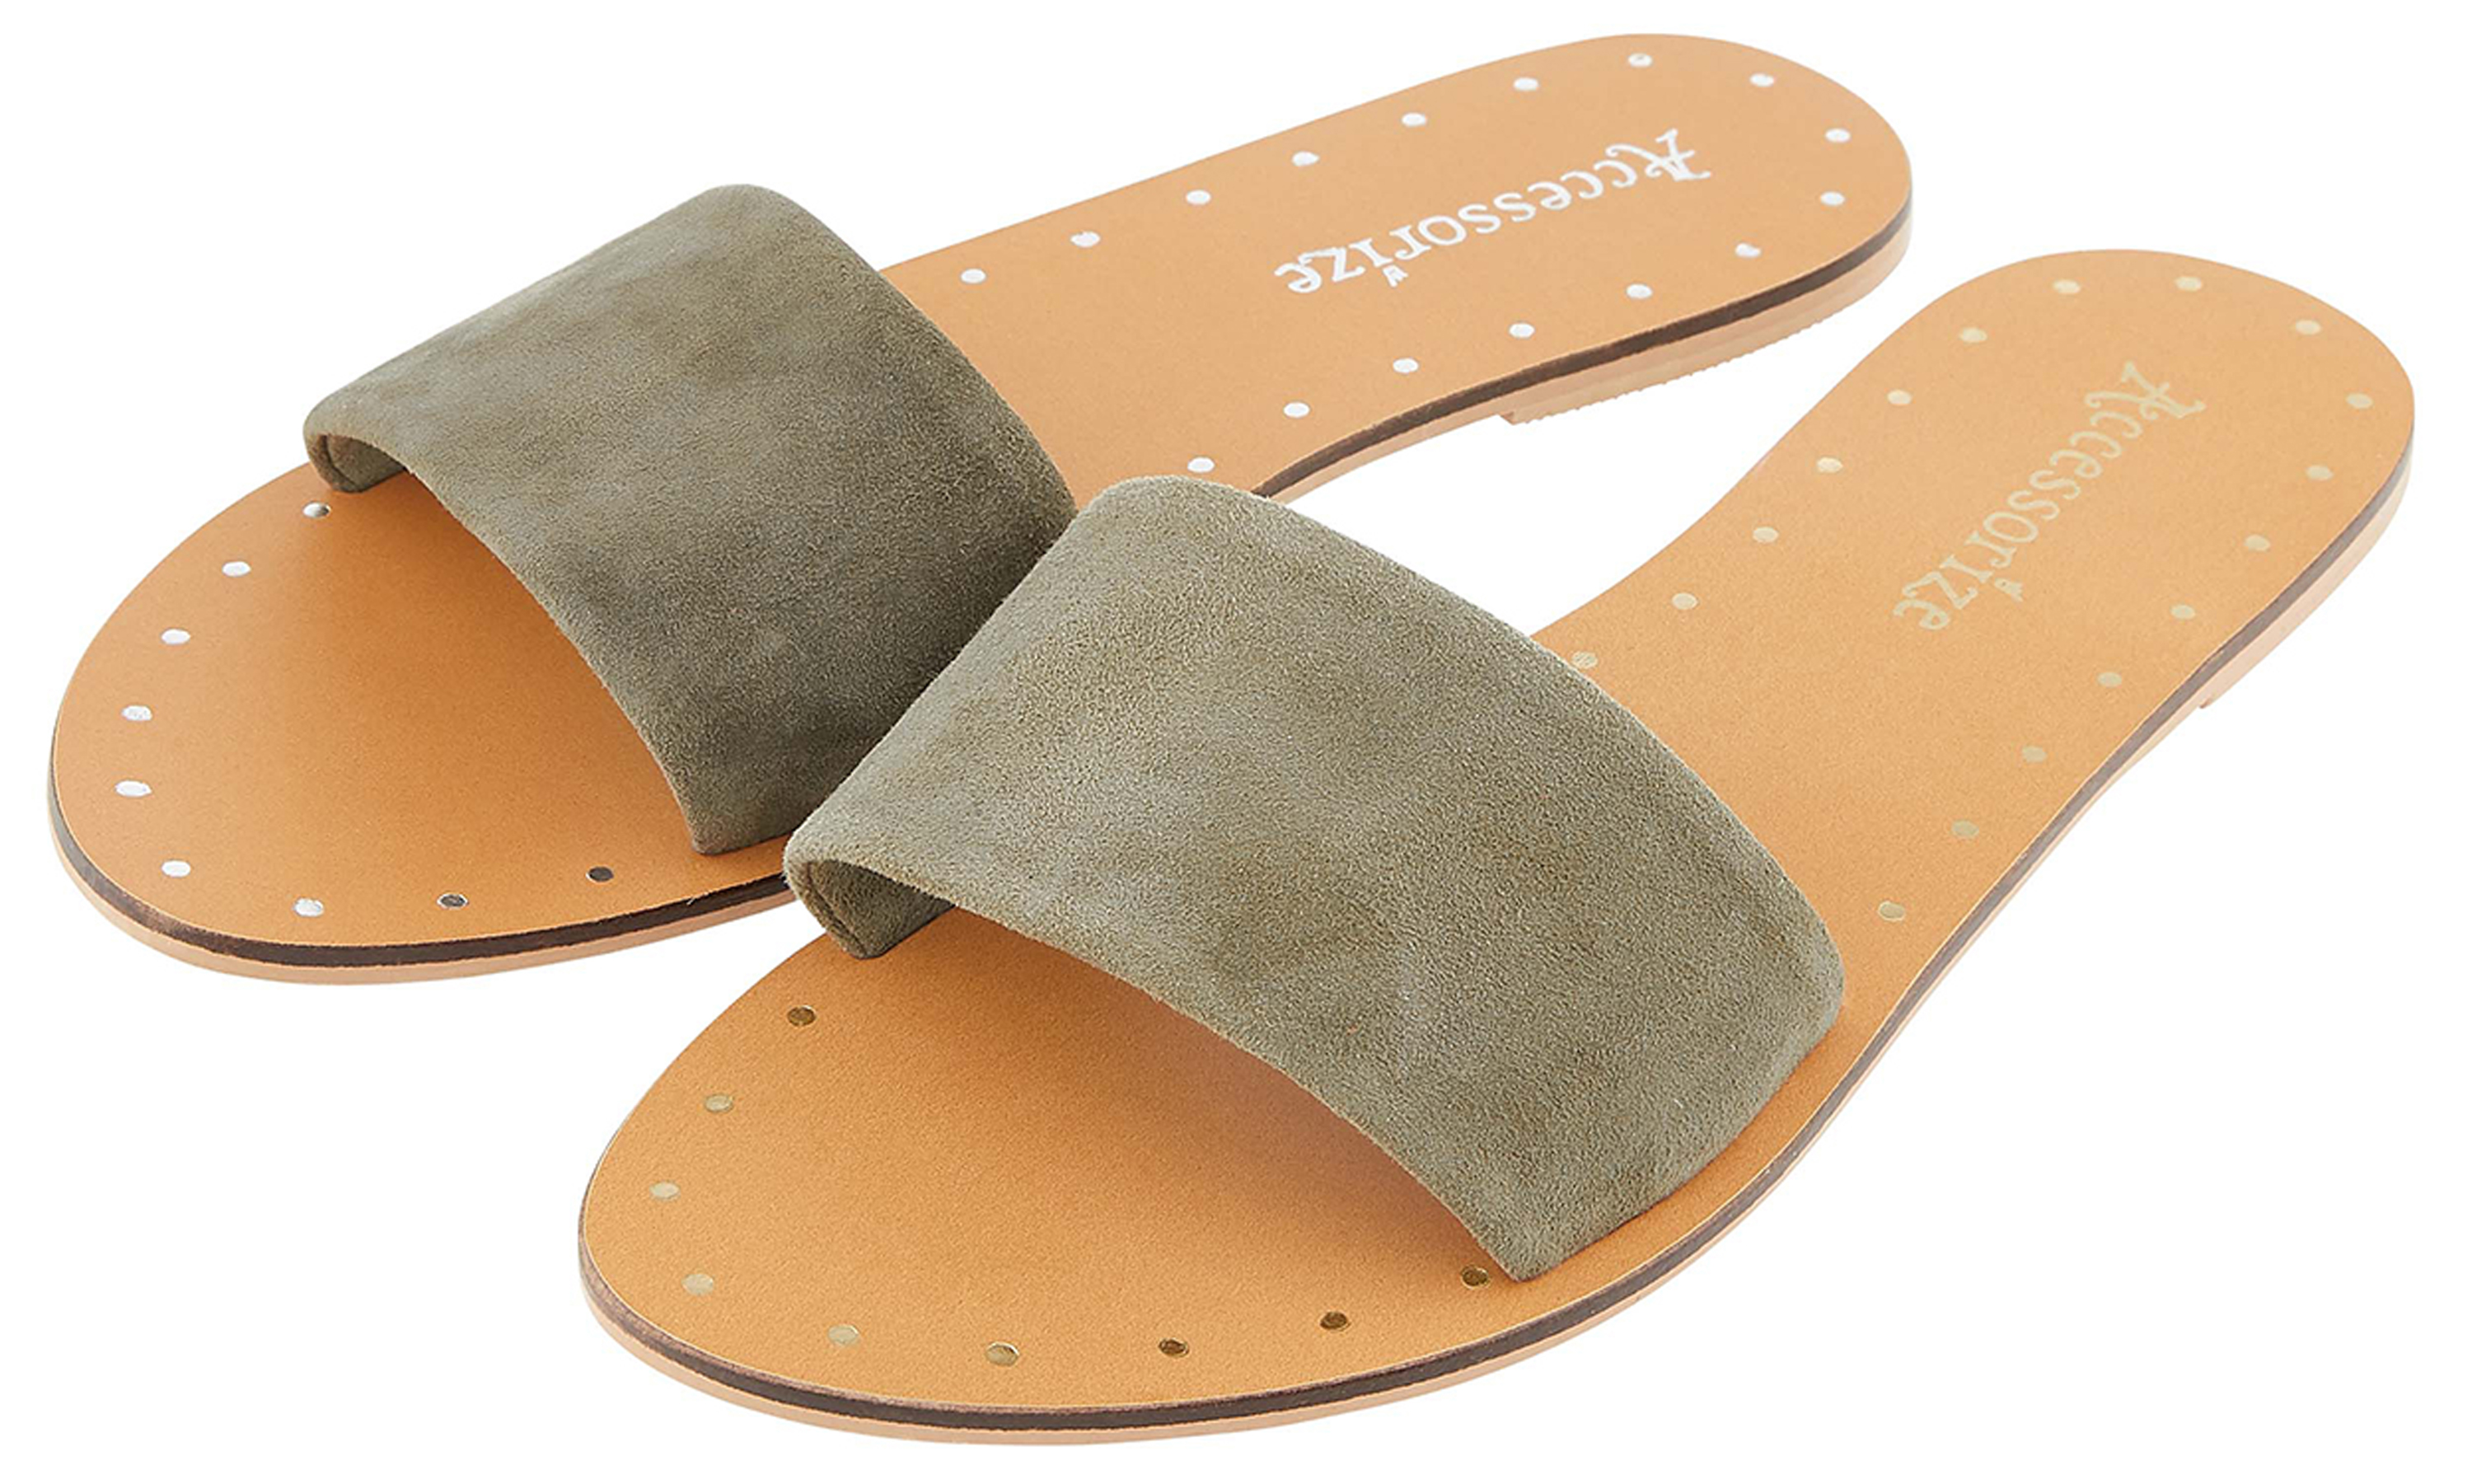 Accessorize Lisbon Suede Sliders, currently reduced to £15.75/AED73.55